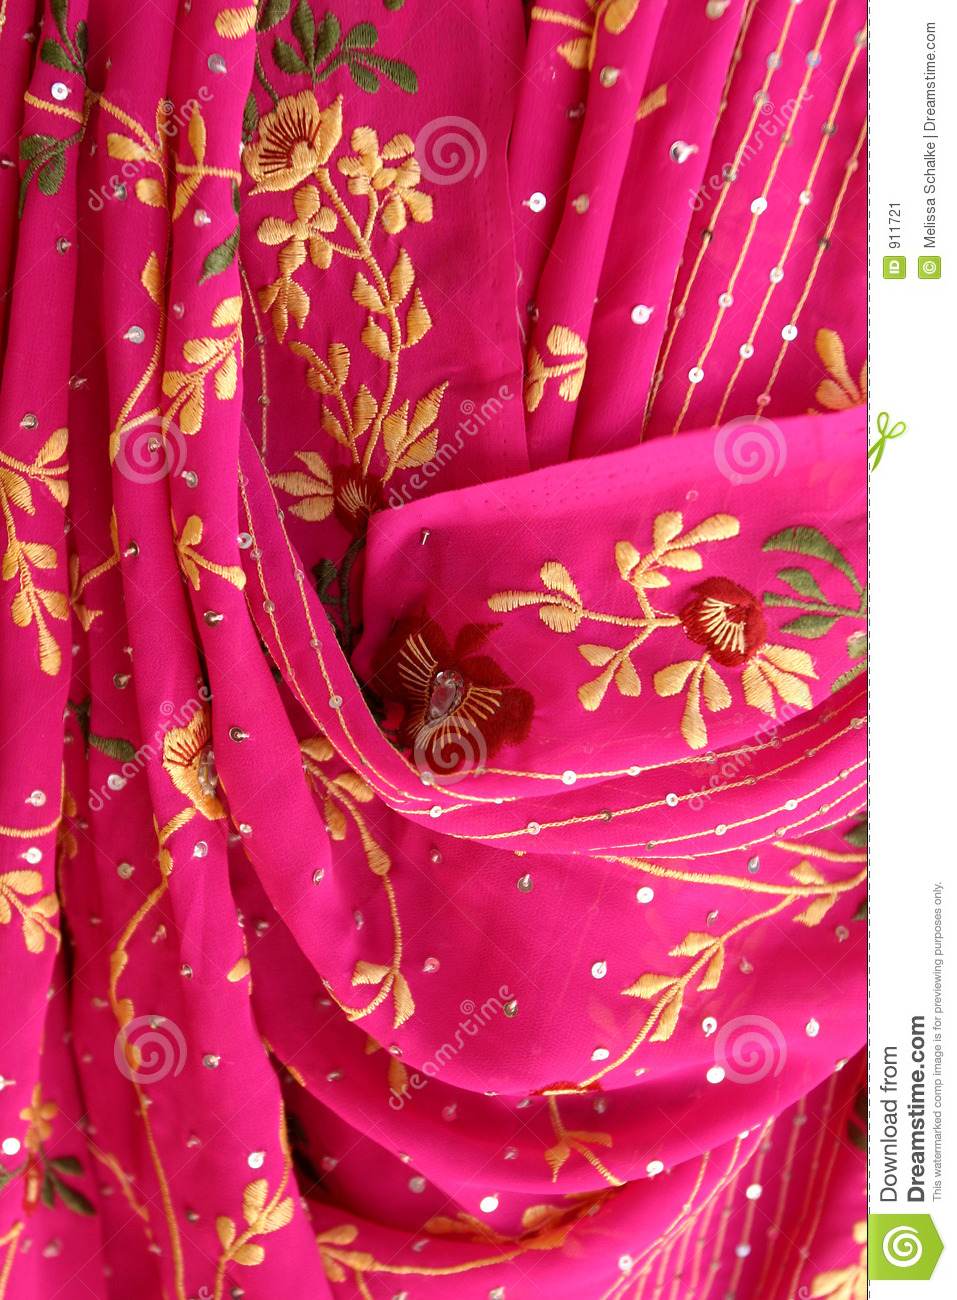 Indian Fabrics Stock Image - Image: 911721